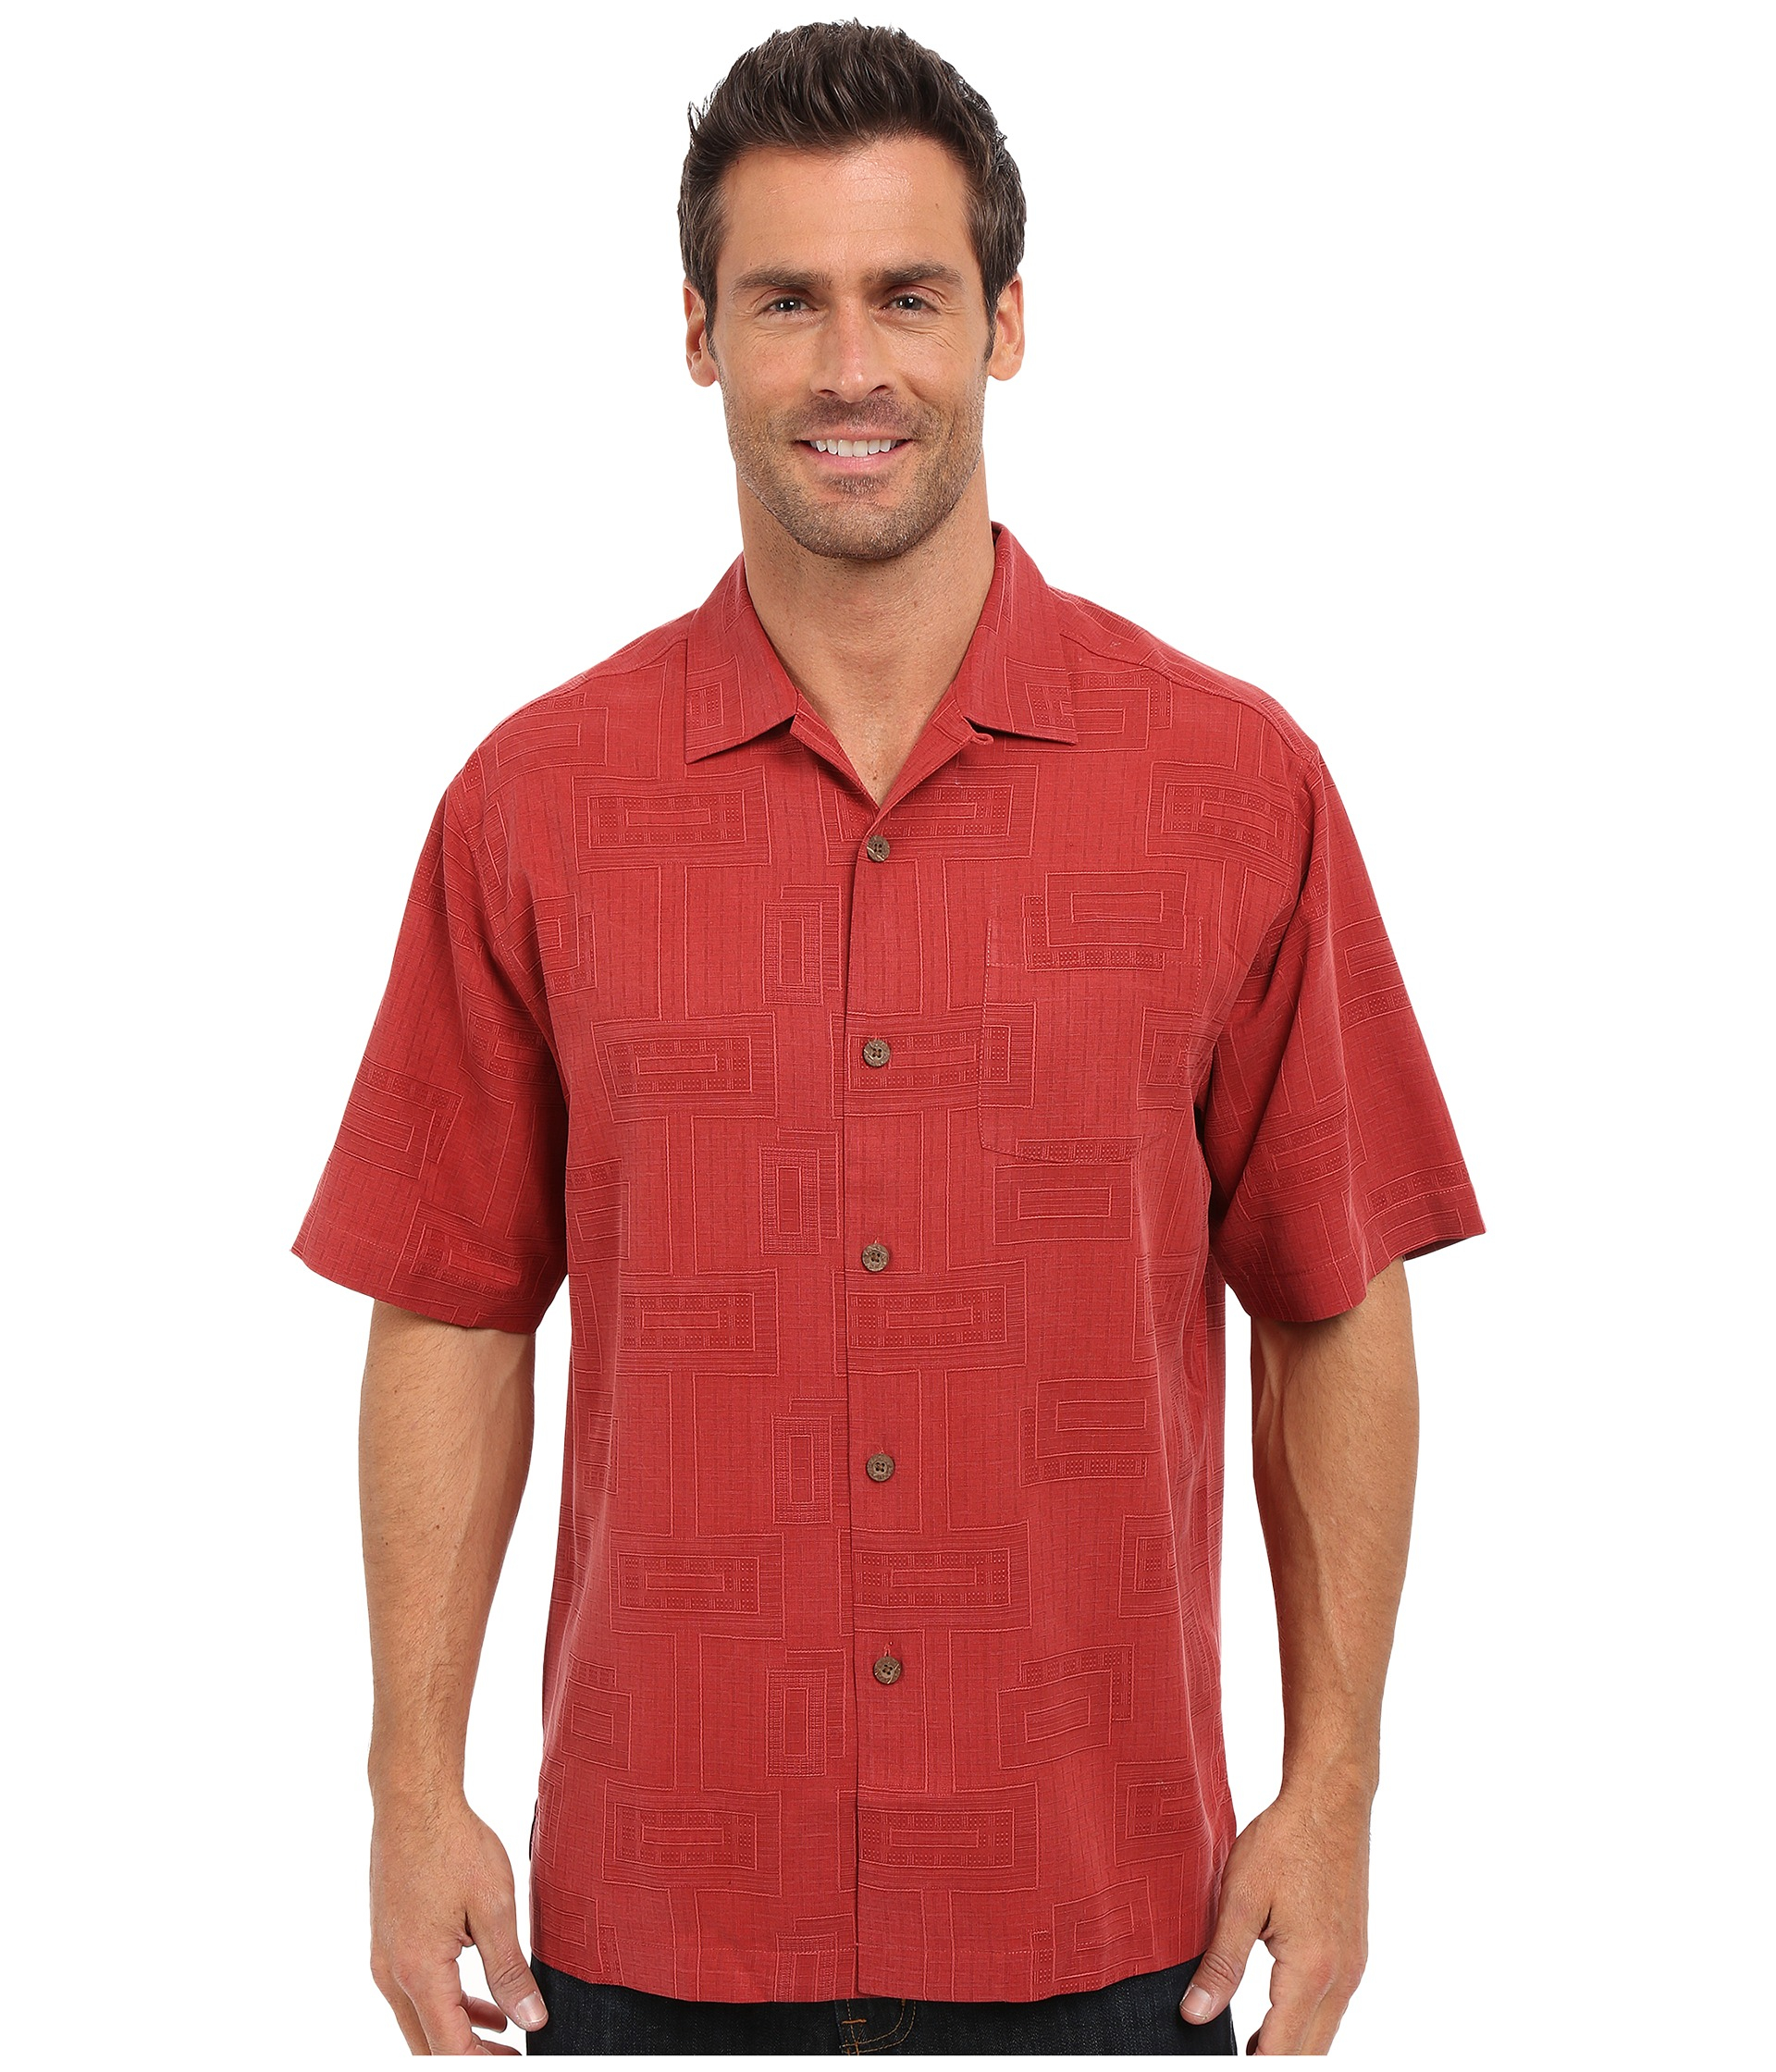 Tommy Bahama Surfwinds Geo Camp Shirt In Red For Men Lyst